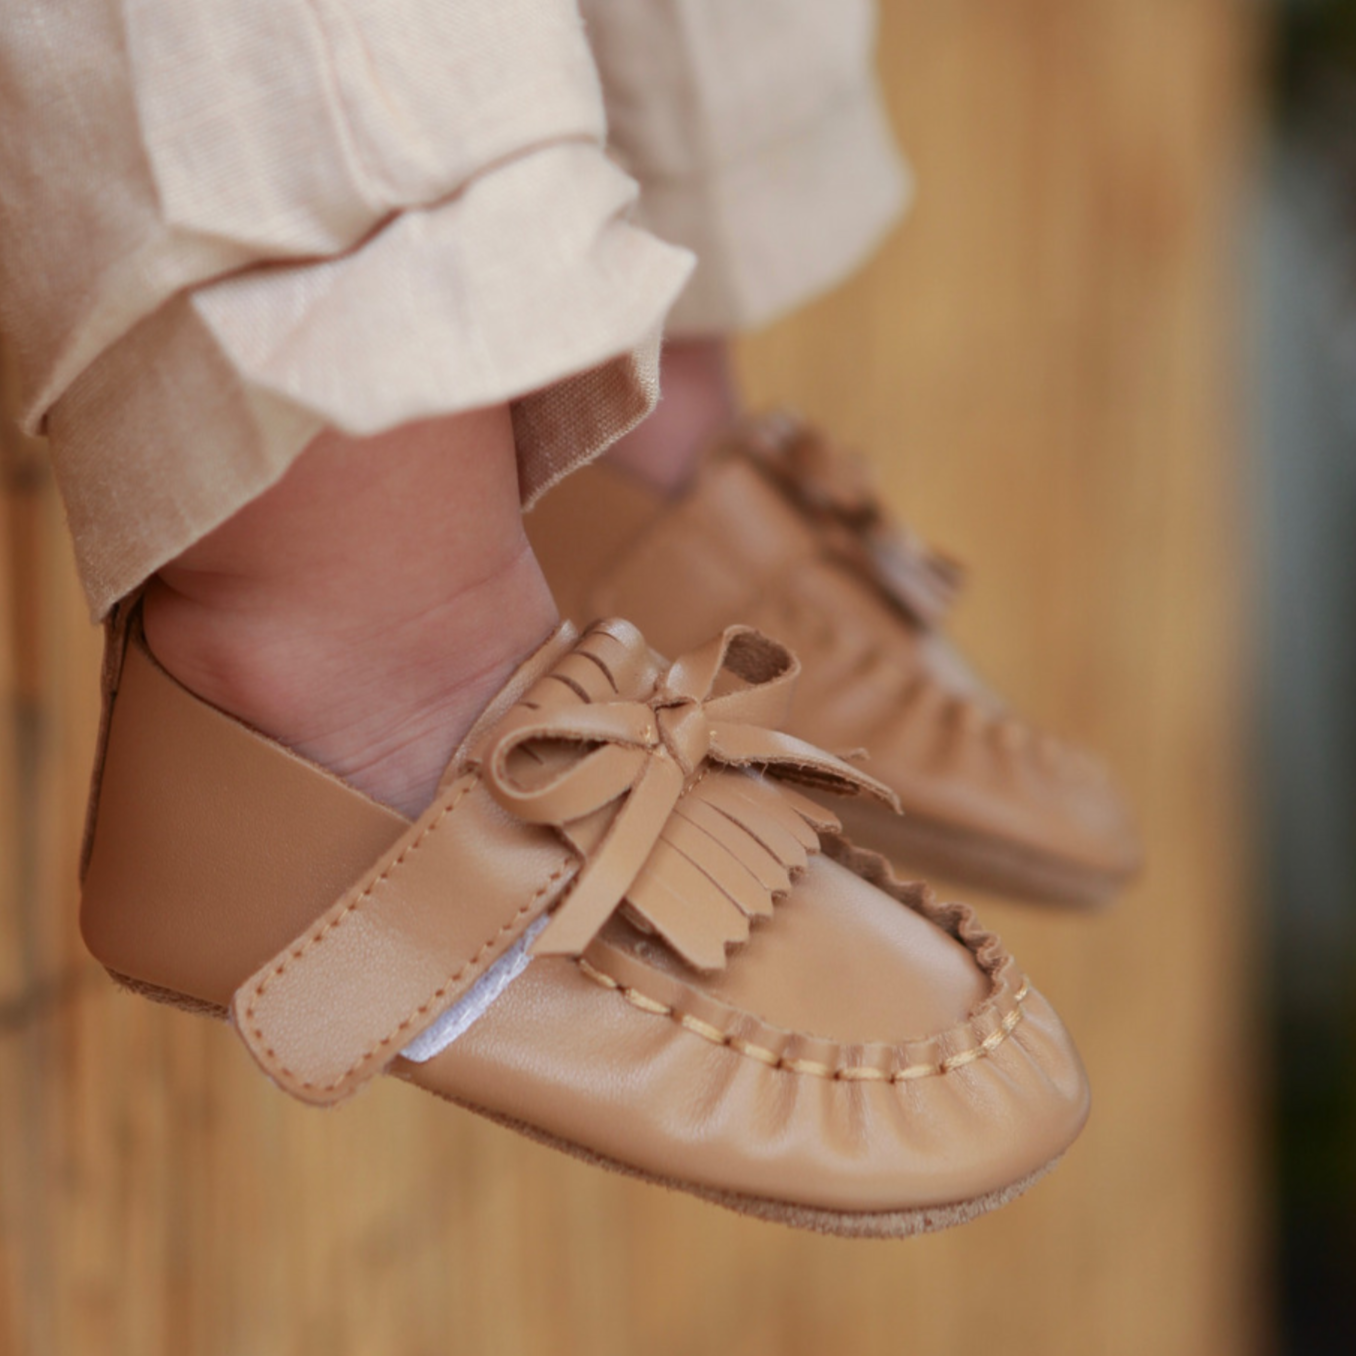 Consciously Baby Consciously Baby Moccasins